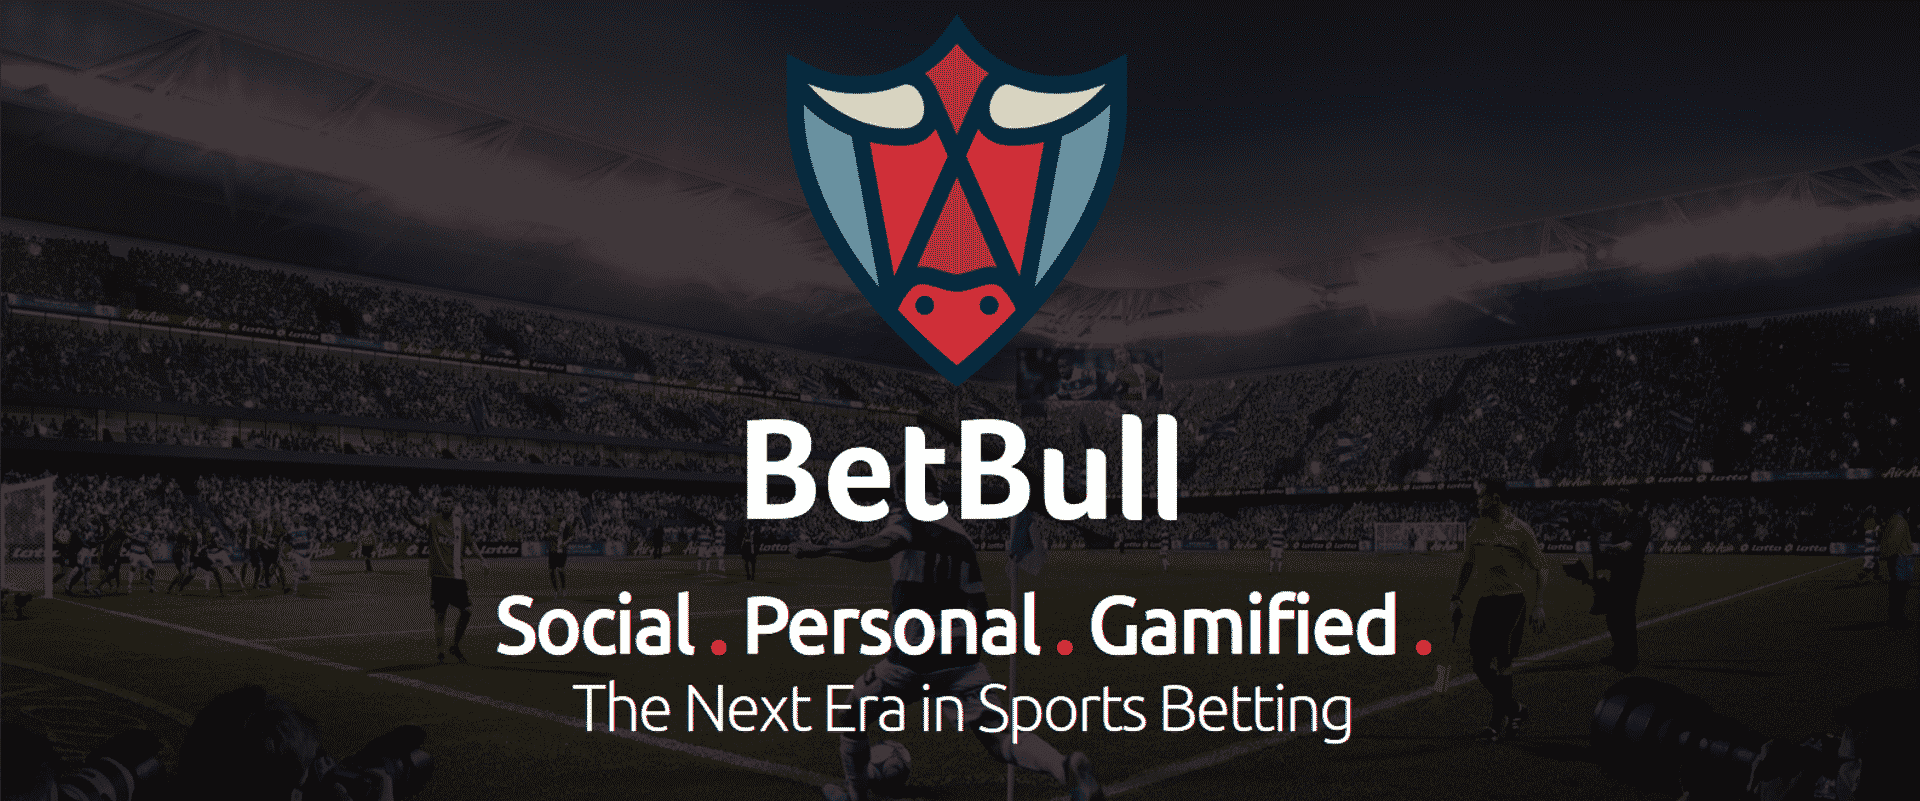 How to Use the Betbull Free Bet